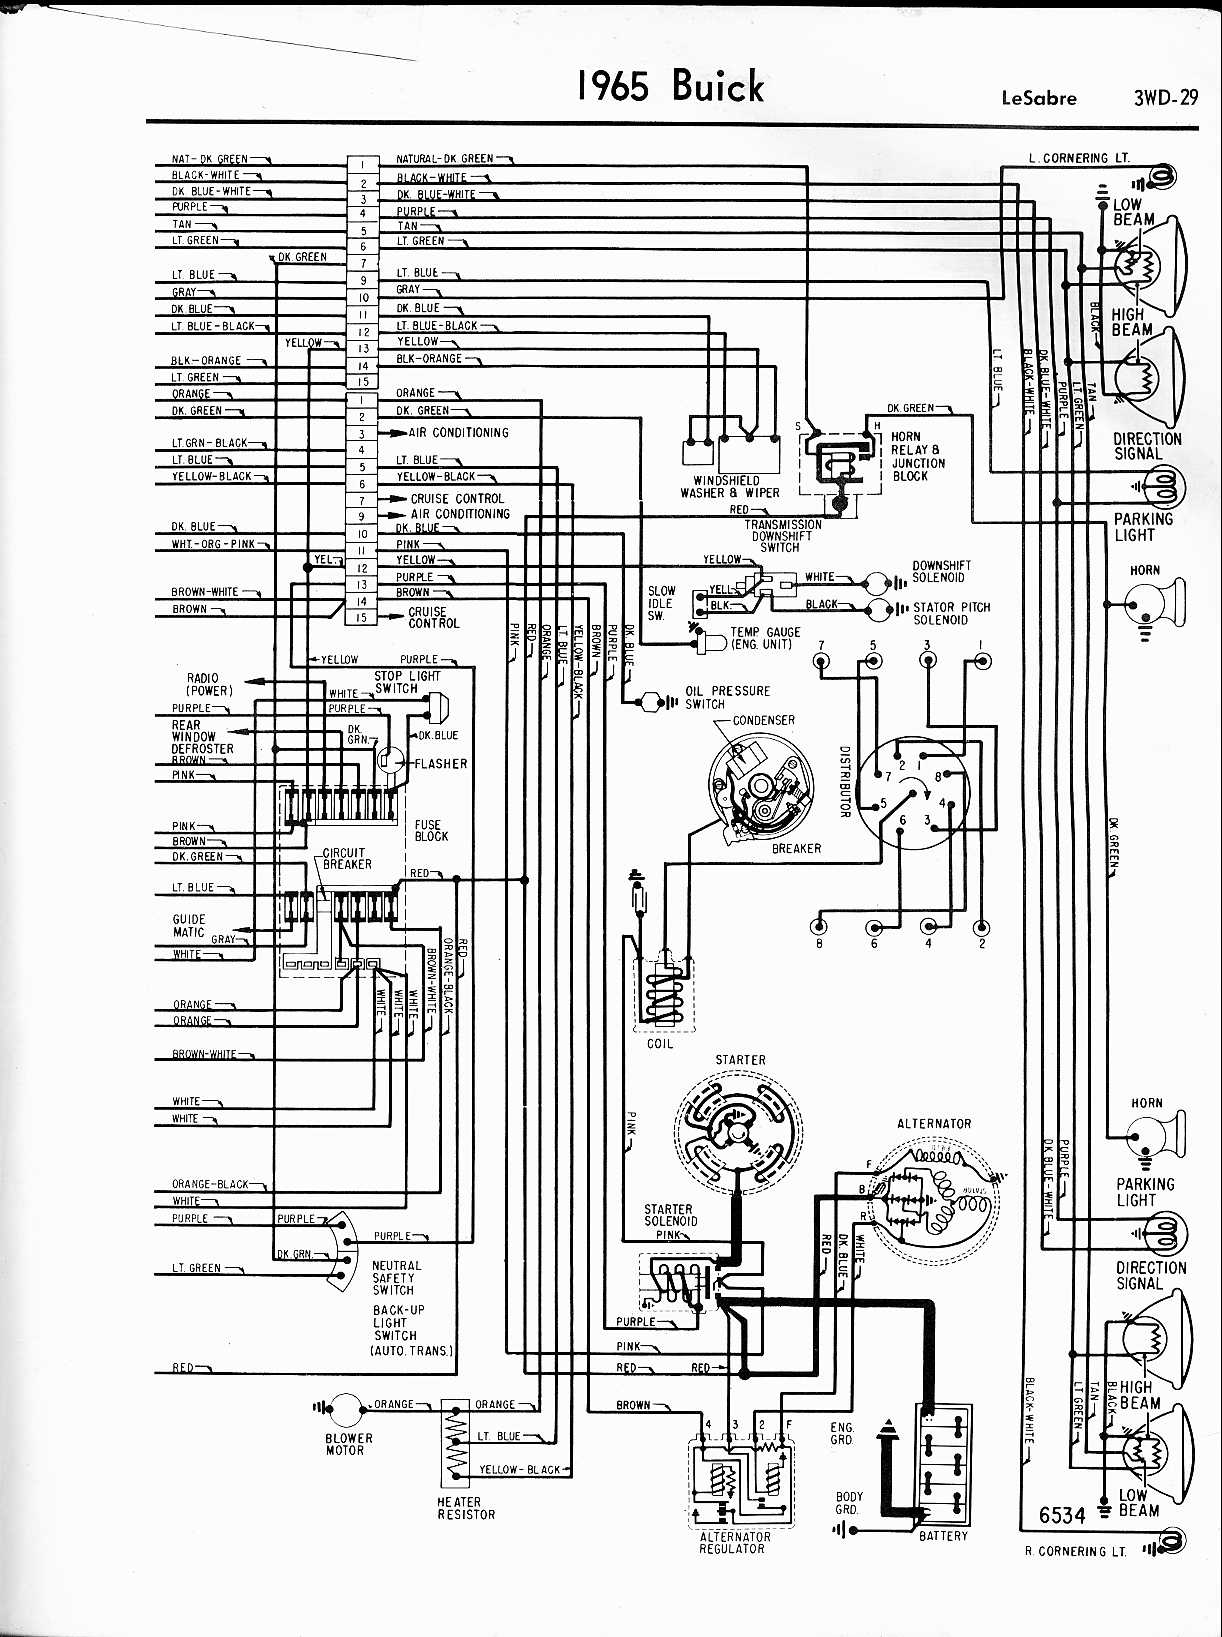 Ron Francis Wiring Harness Diagram Fuel Pump together with Faq About Engine Transmission Coolers further Catalog3 in addition Catalog3 further Catalog3. on 1960 corvette wiring diagram